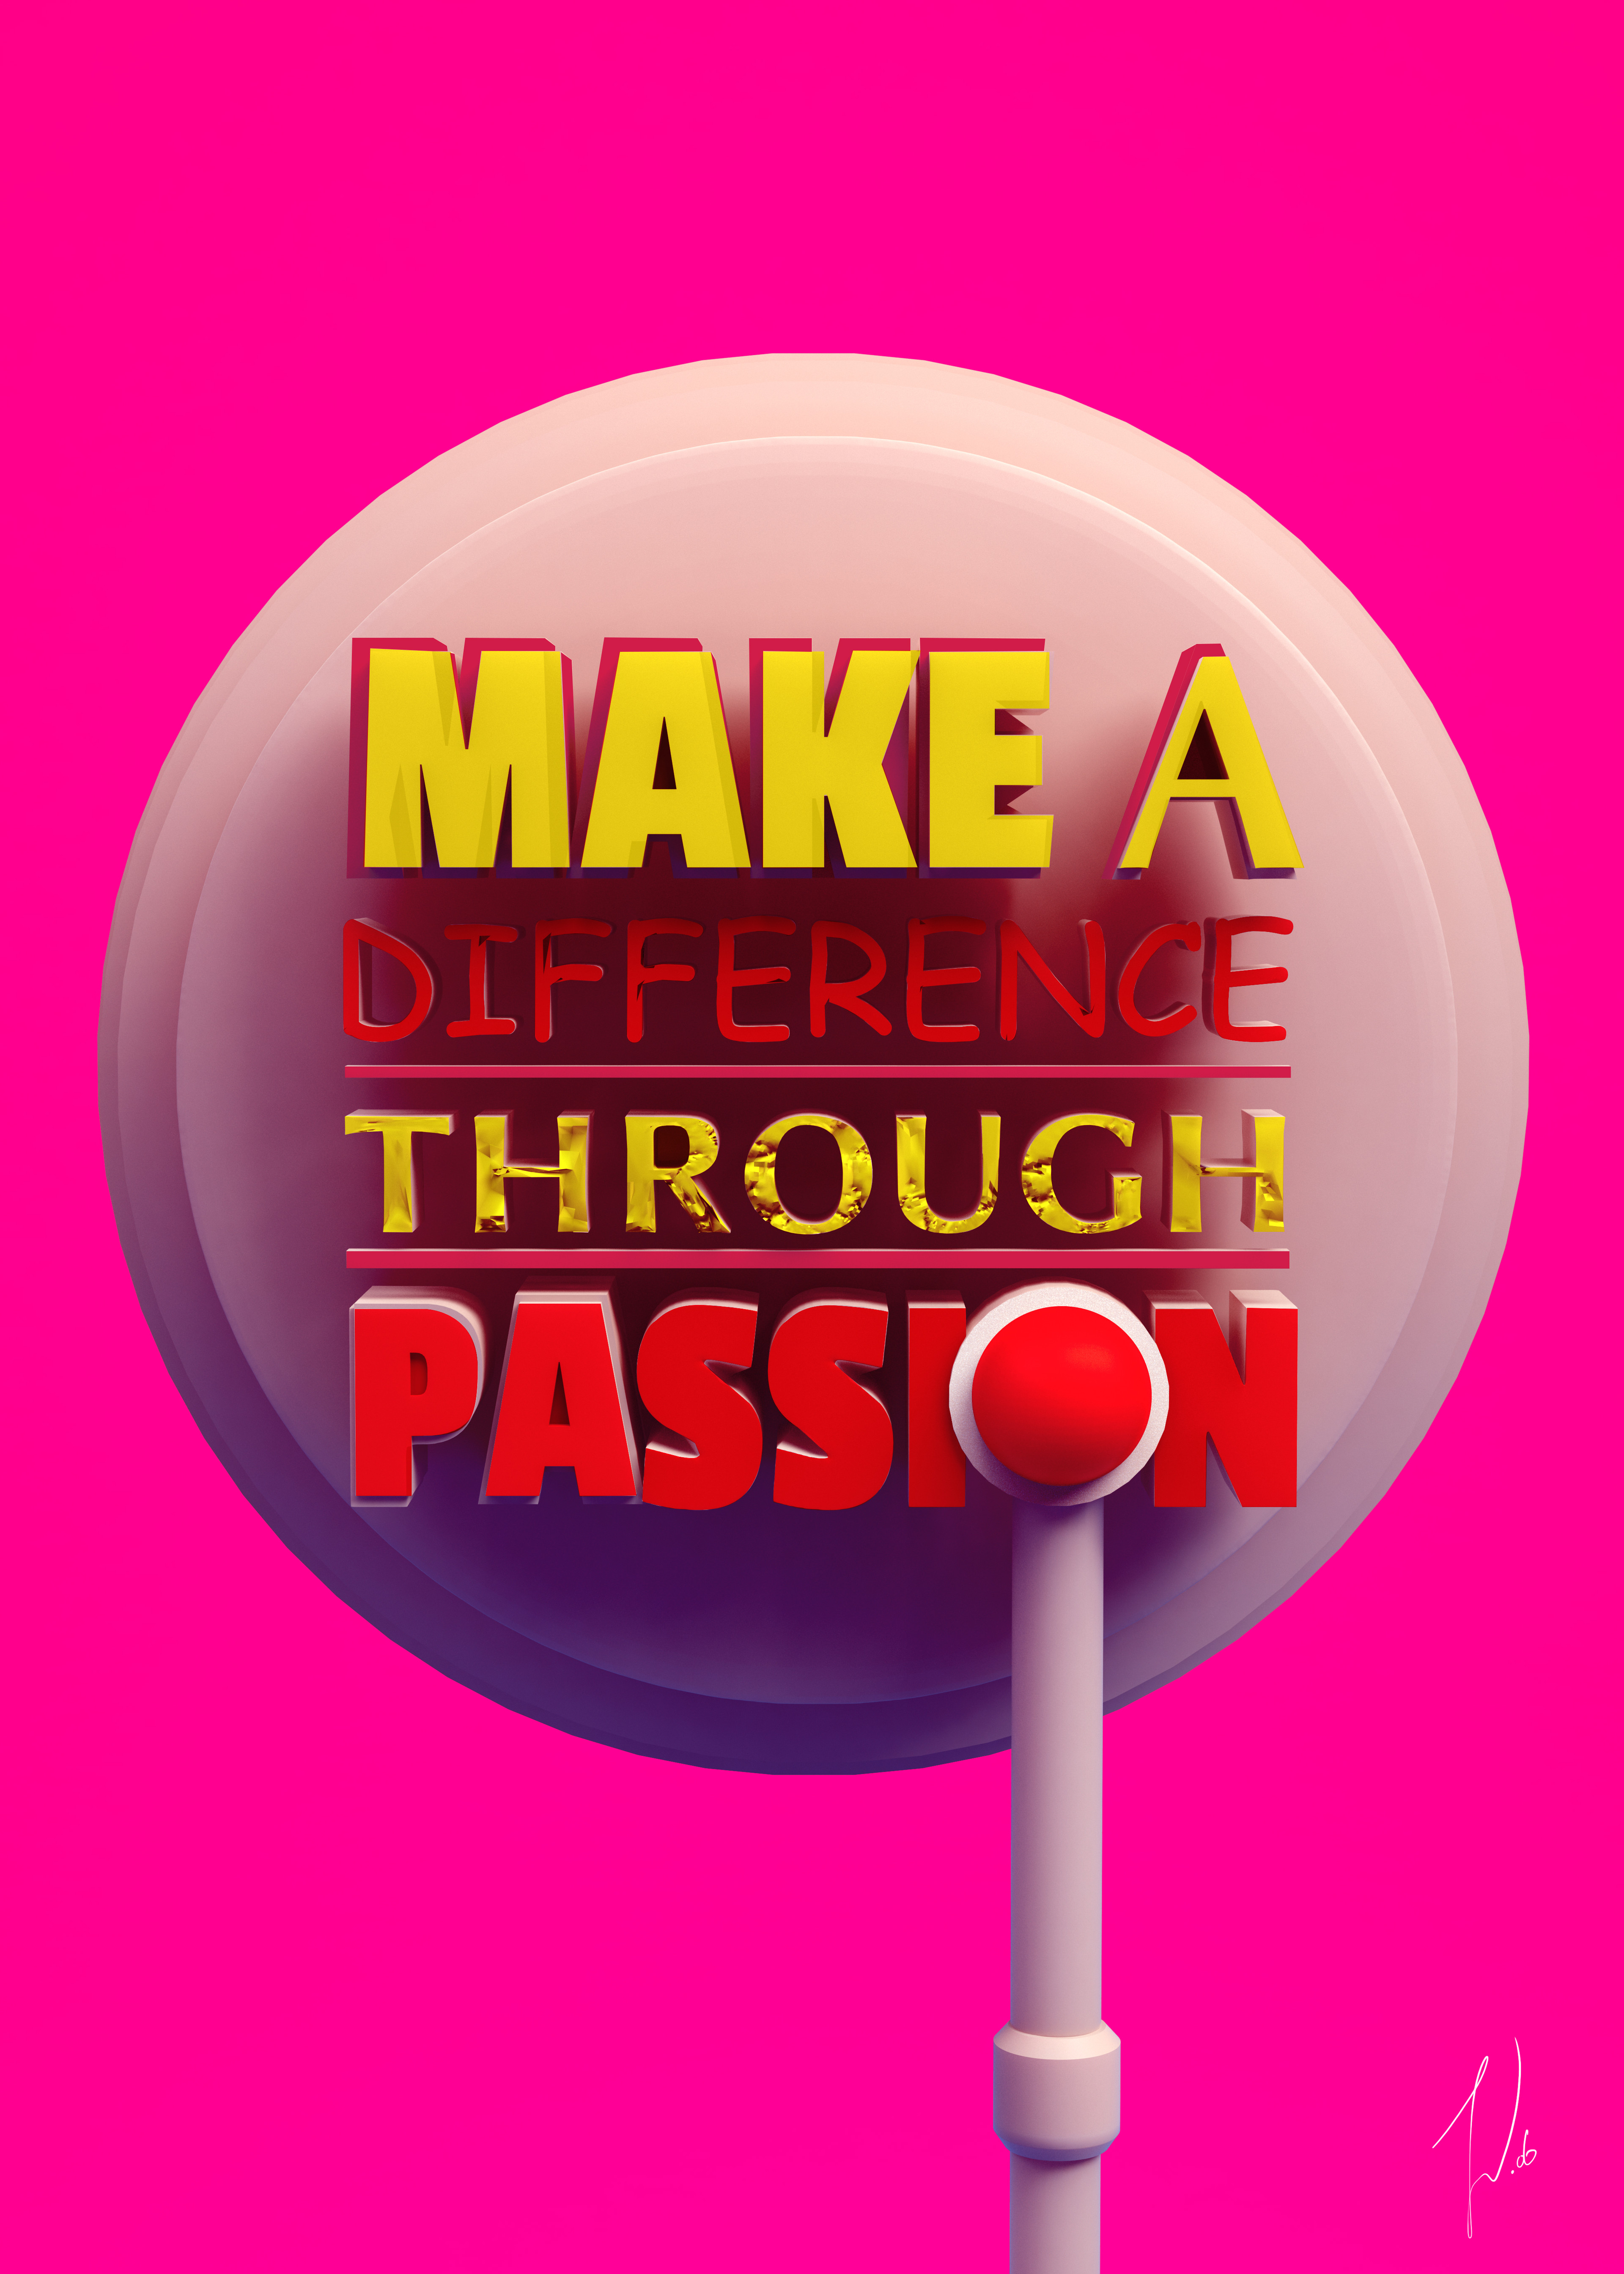 '' MAKE A DIFFERENCE THROUGH PASSION ''